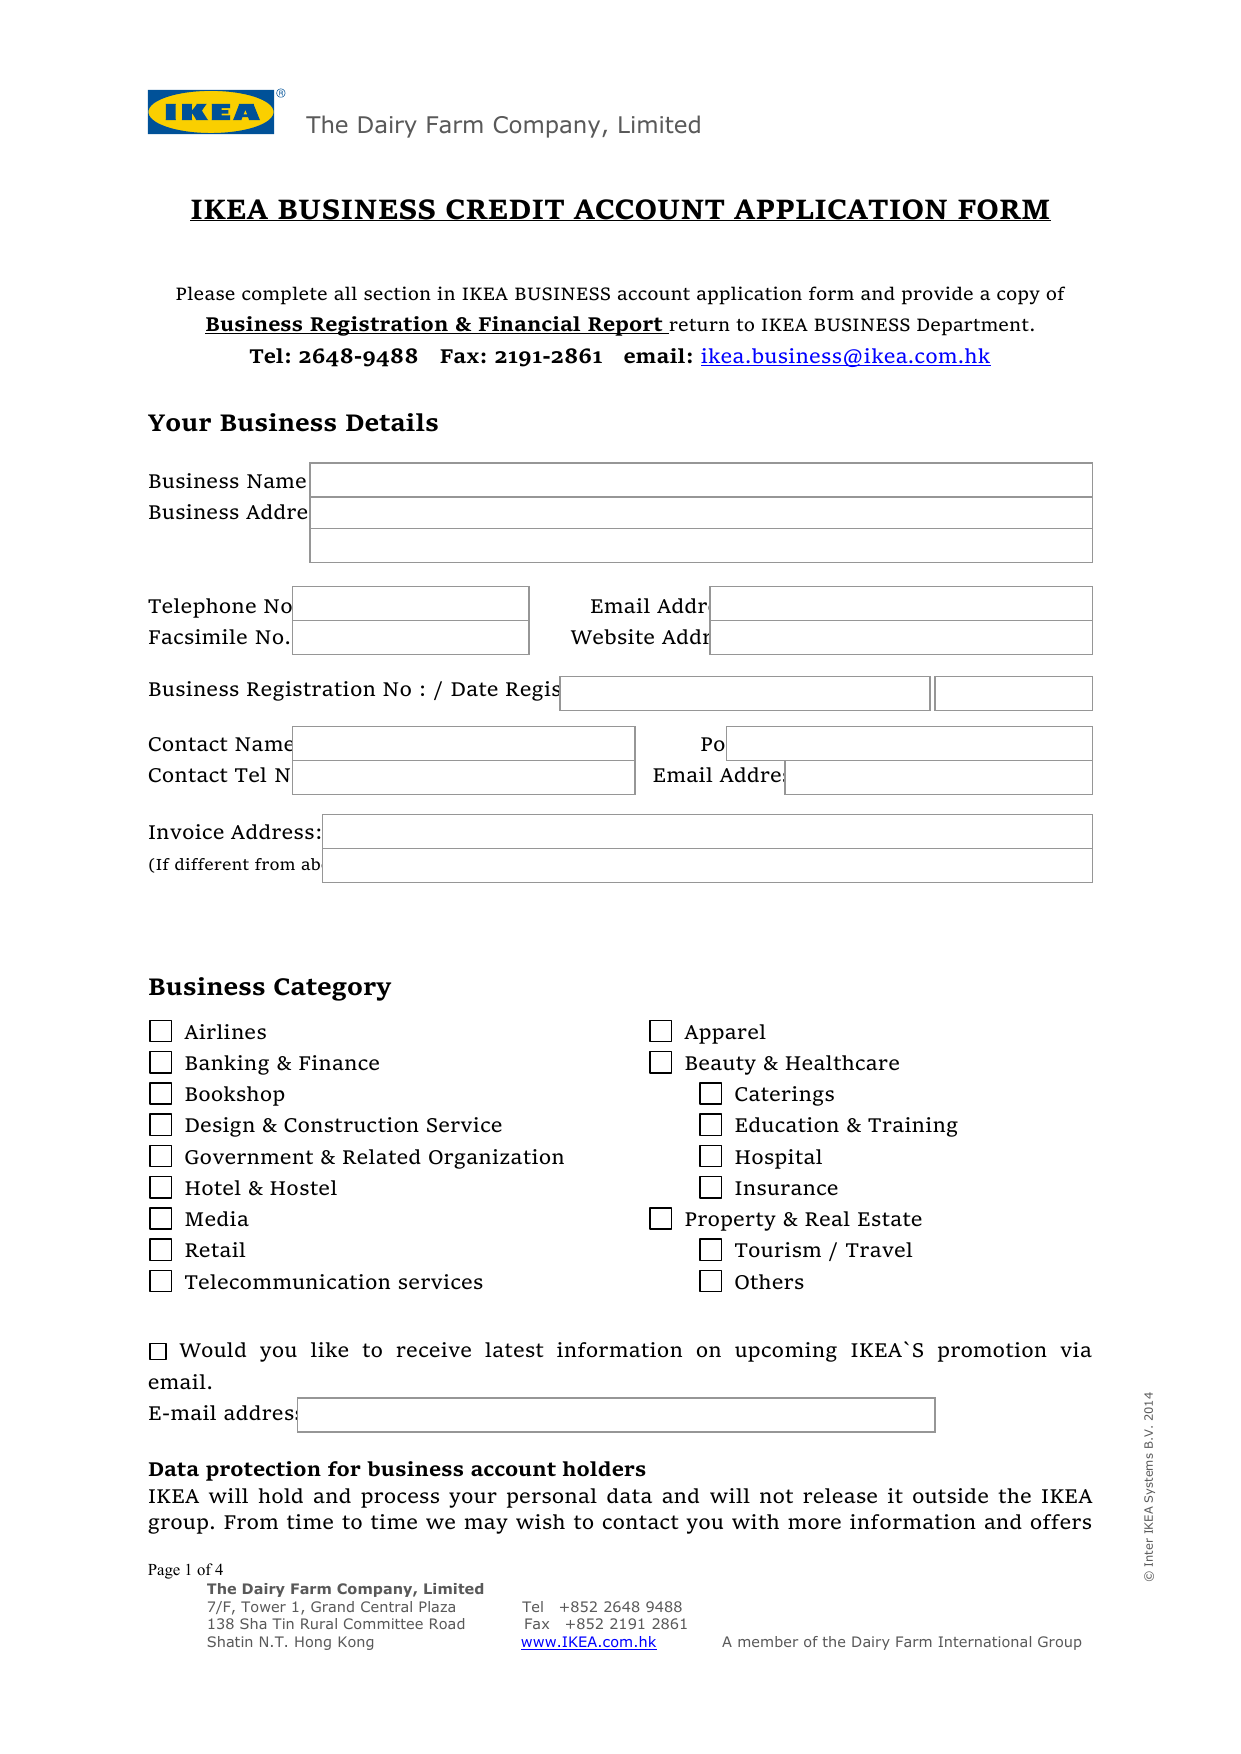 Ikea Business Account Application Form